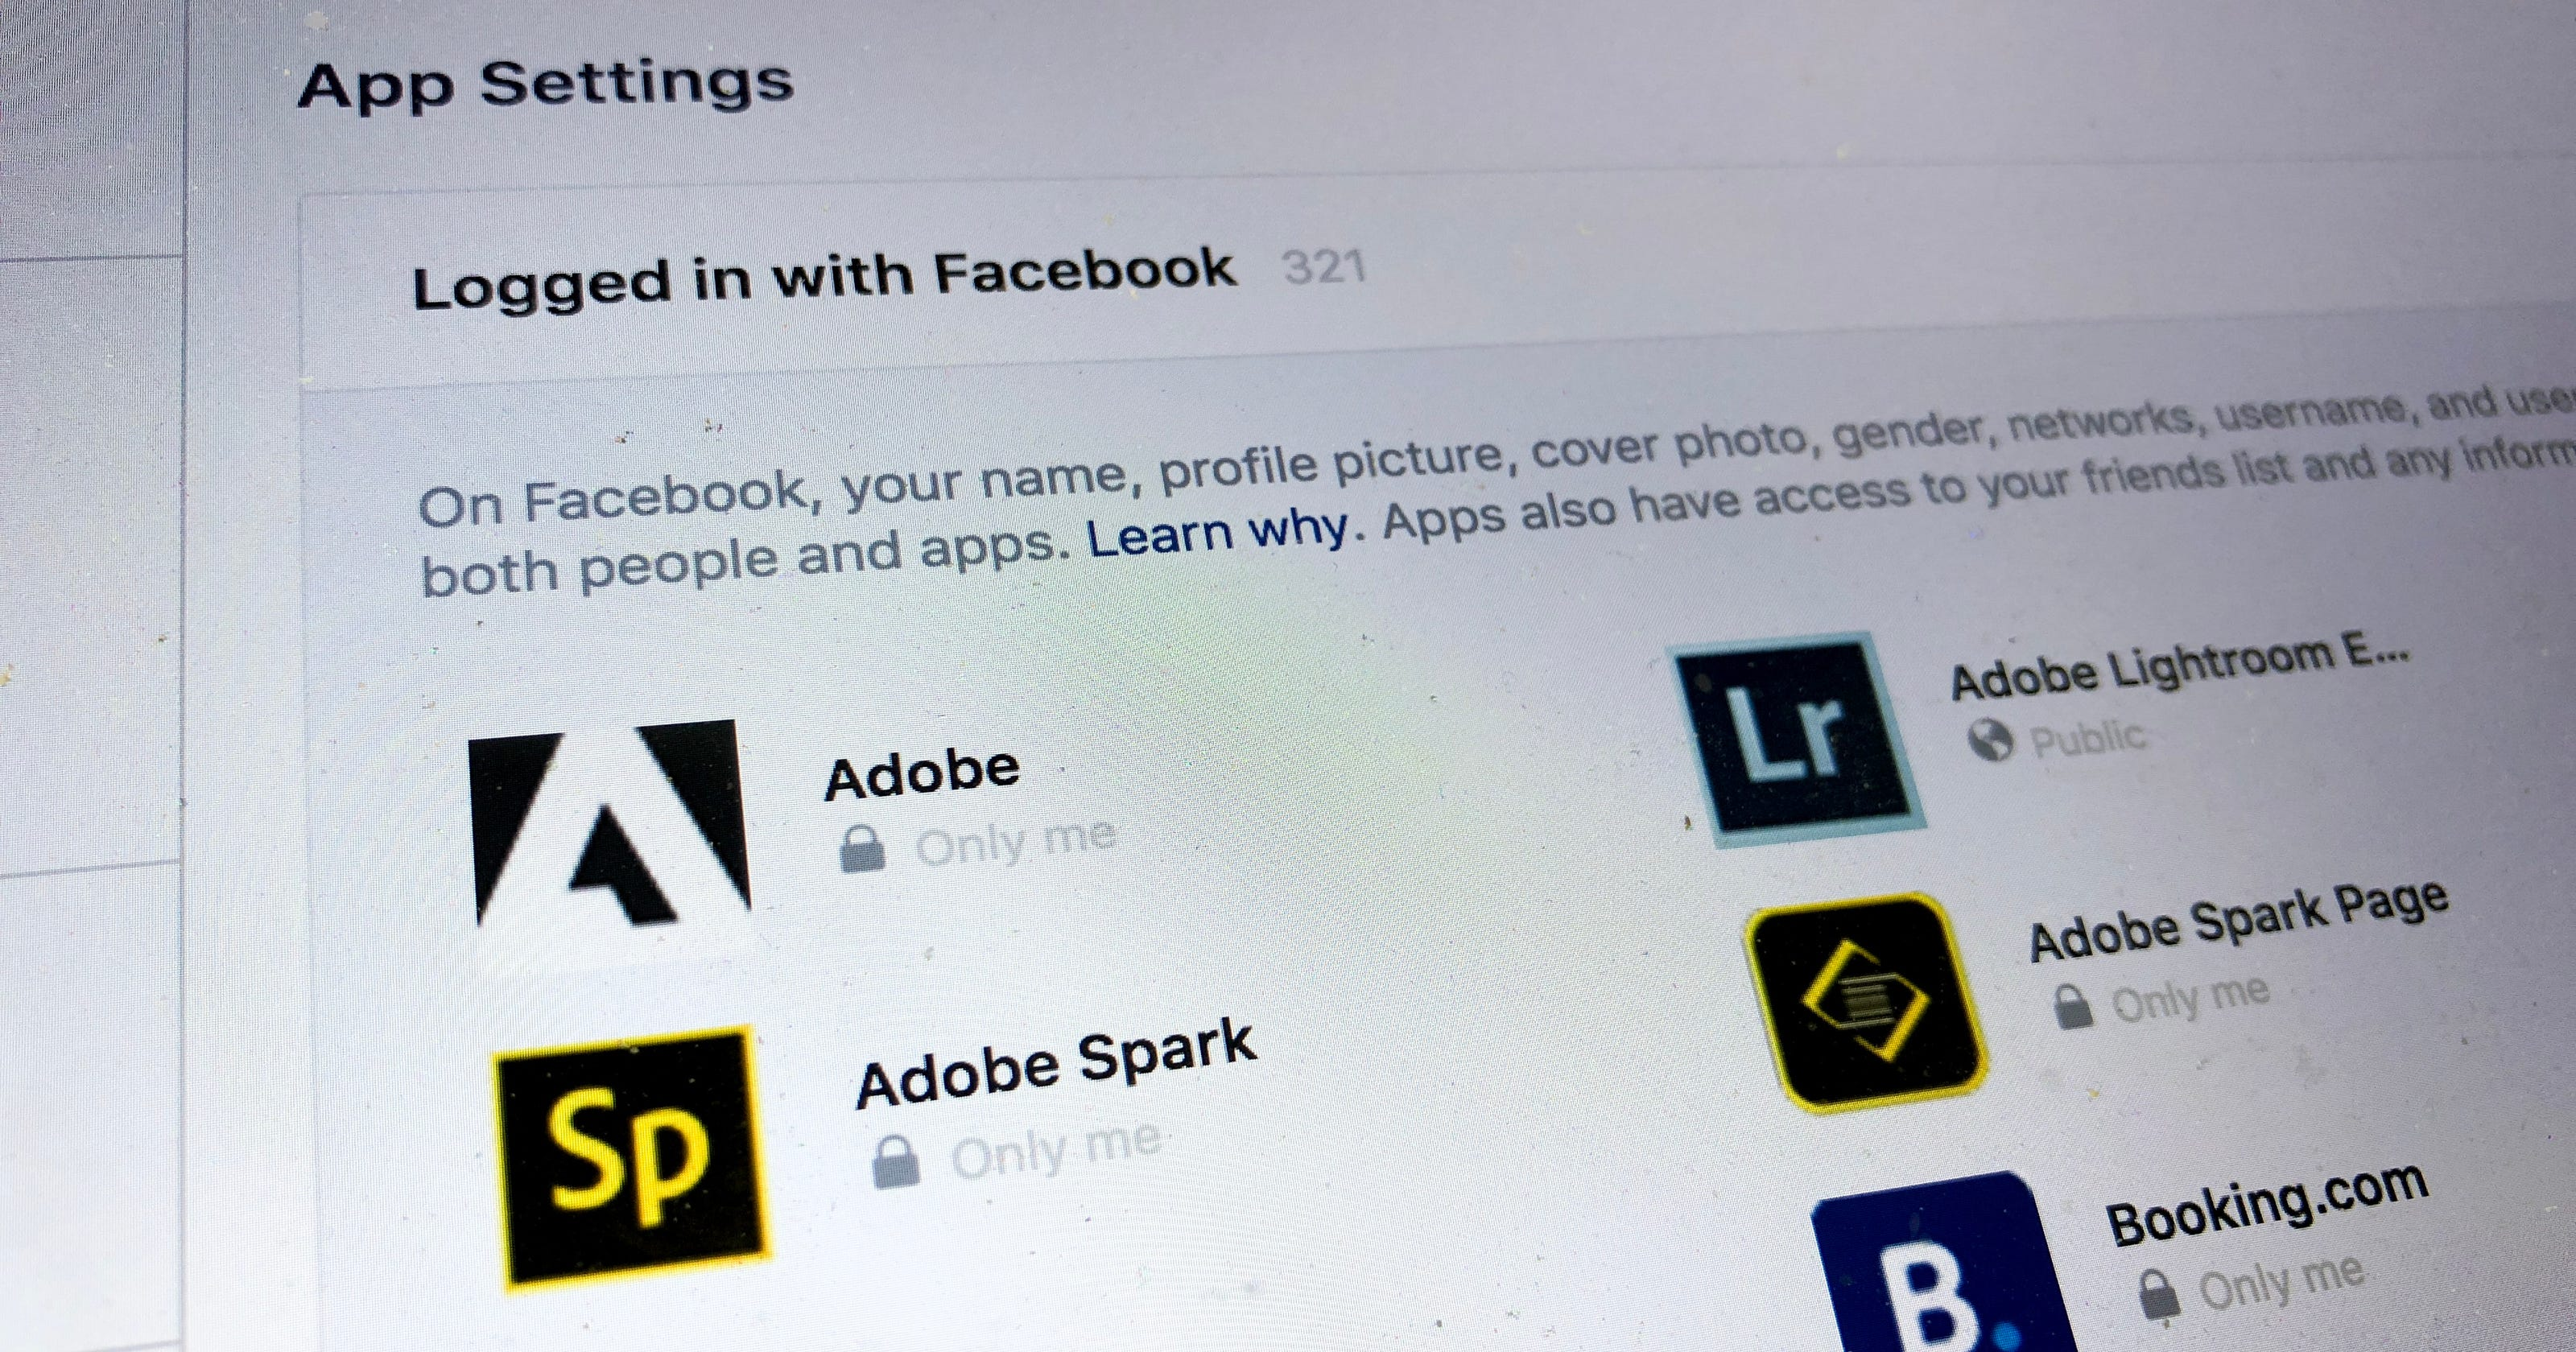 Facebook apps: how to delete all those apps